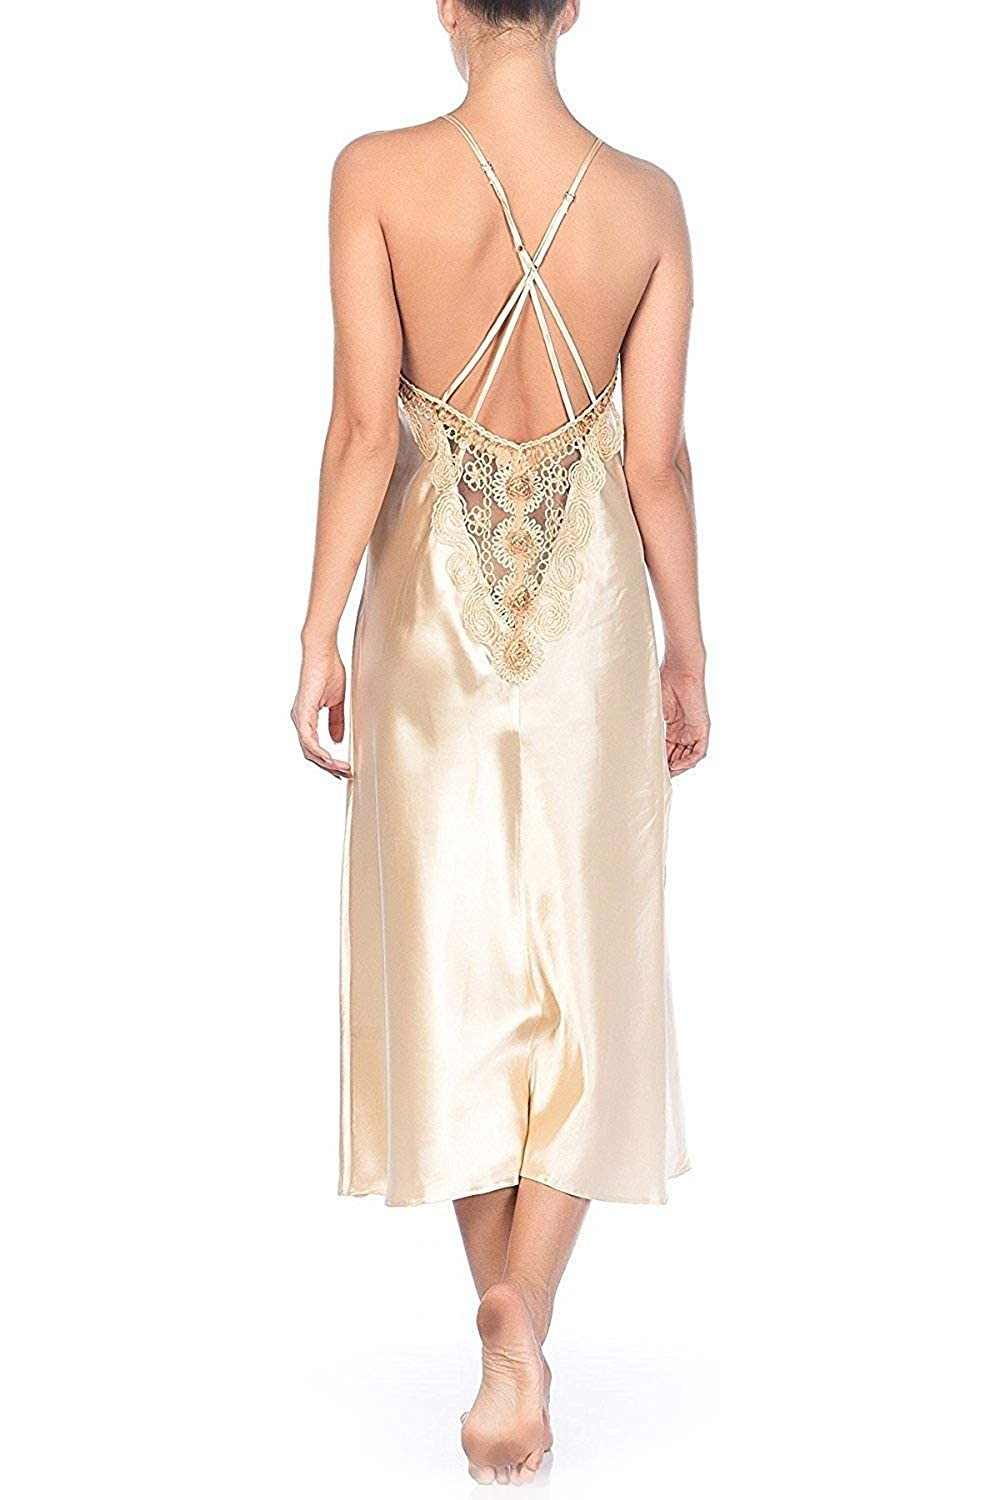 790eb8fc8567f Set of Sexy Luxurious Long Satin Nightgown in Beautiful Gold Color with  Matching G String, Irresistible Soft to Touch Charming Full Length  Nightdress with ...